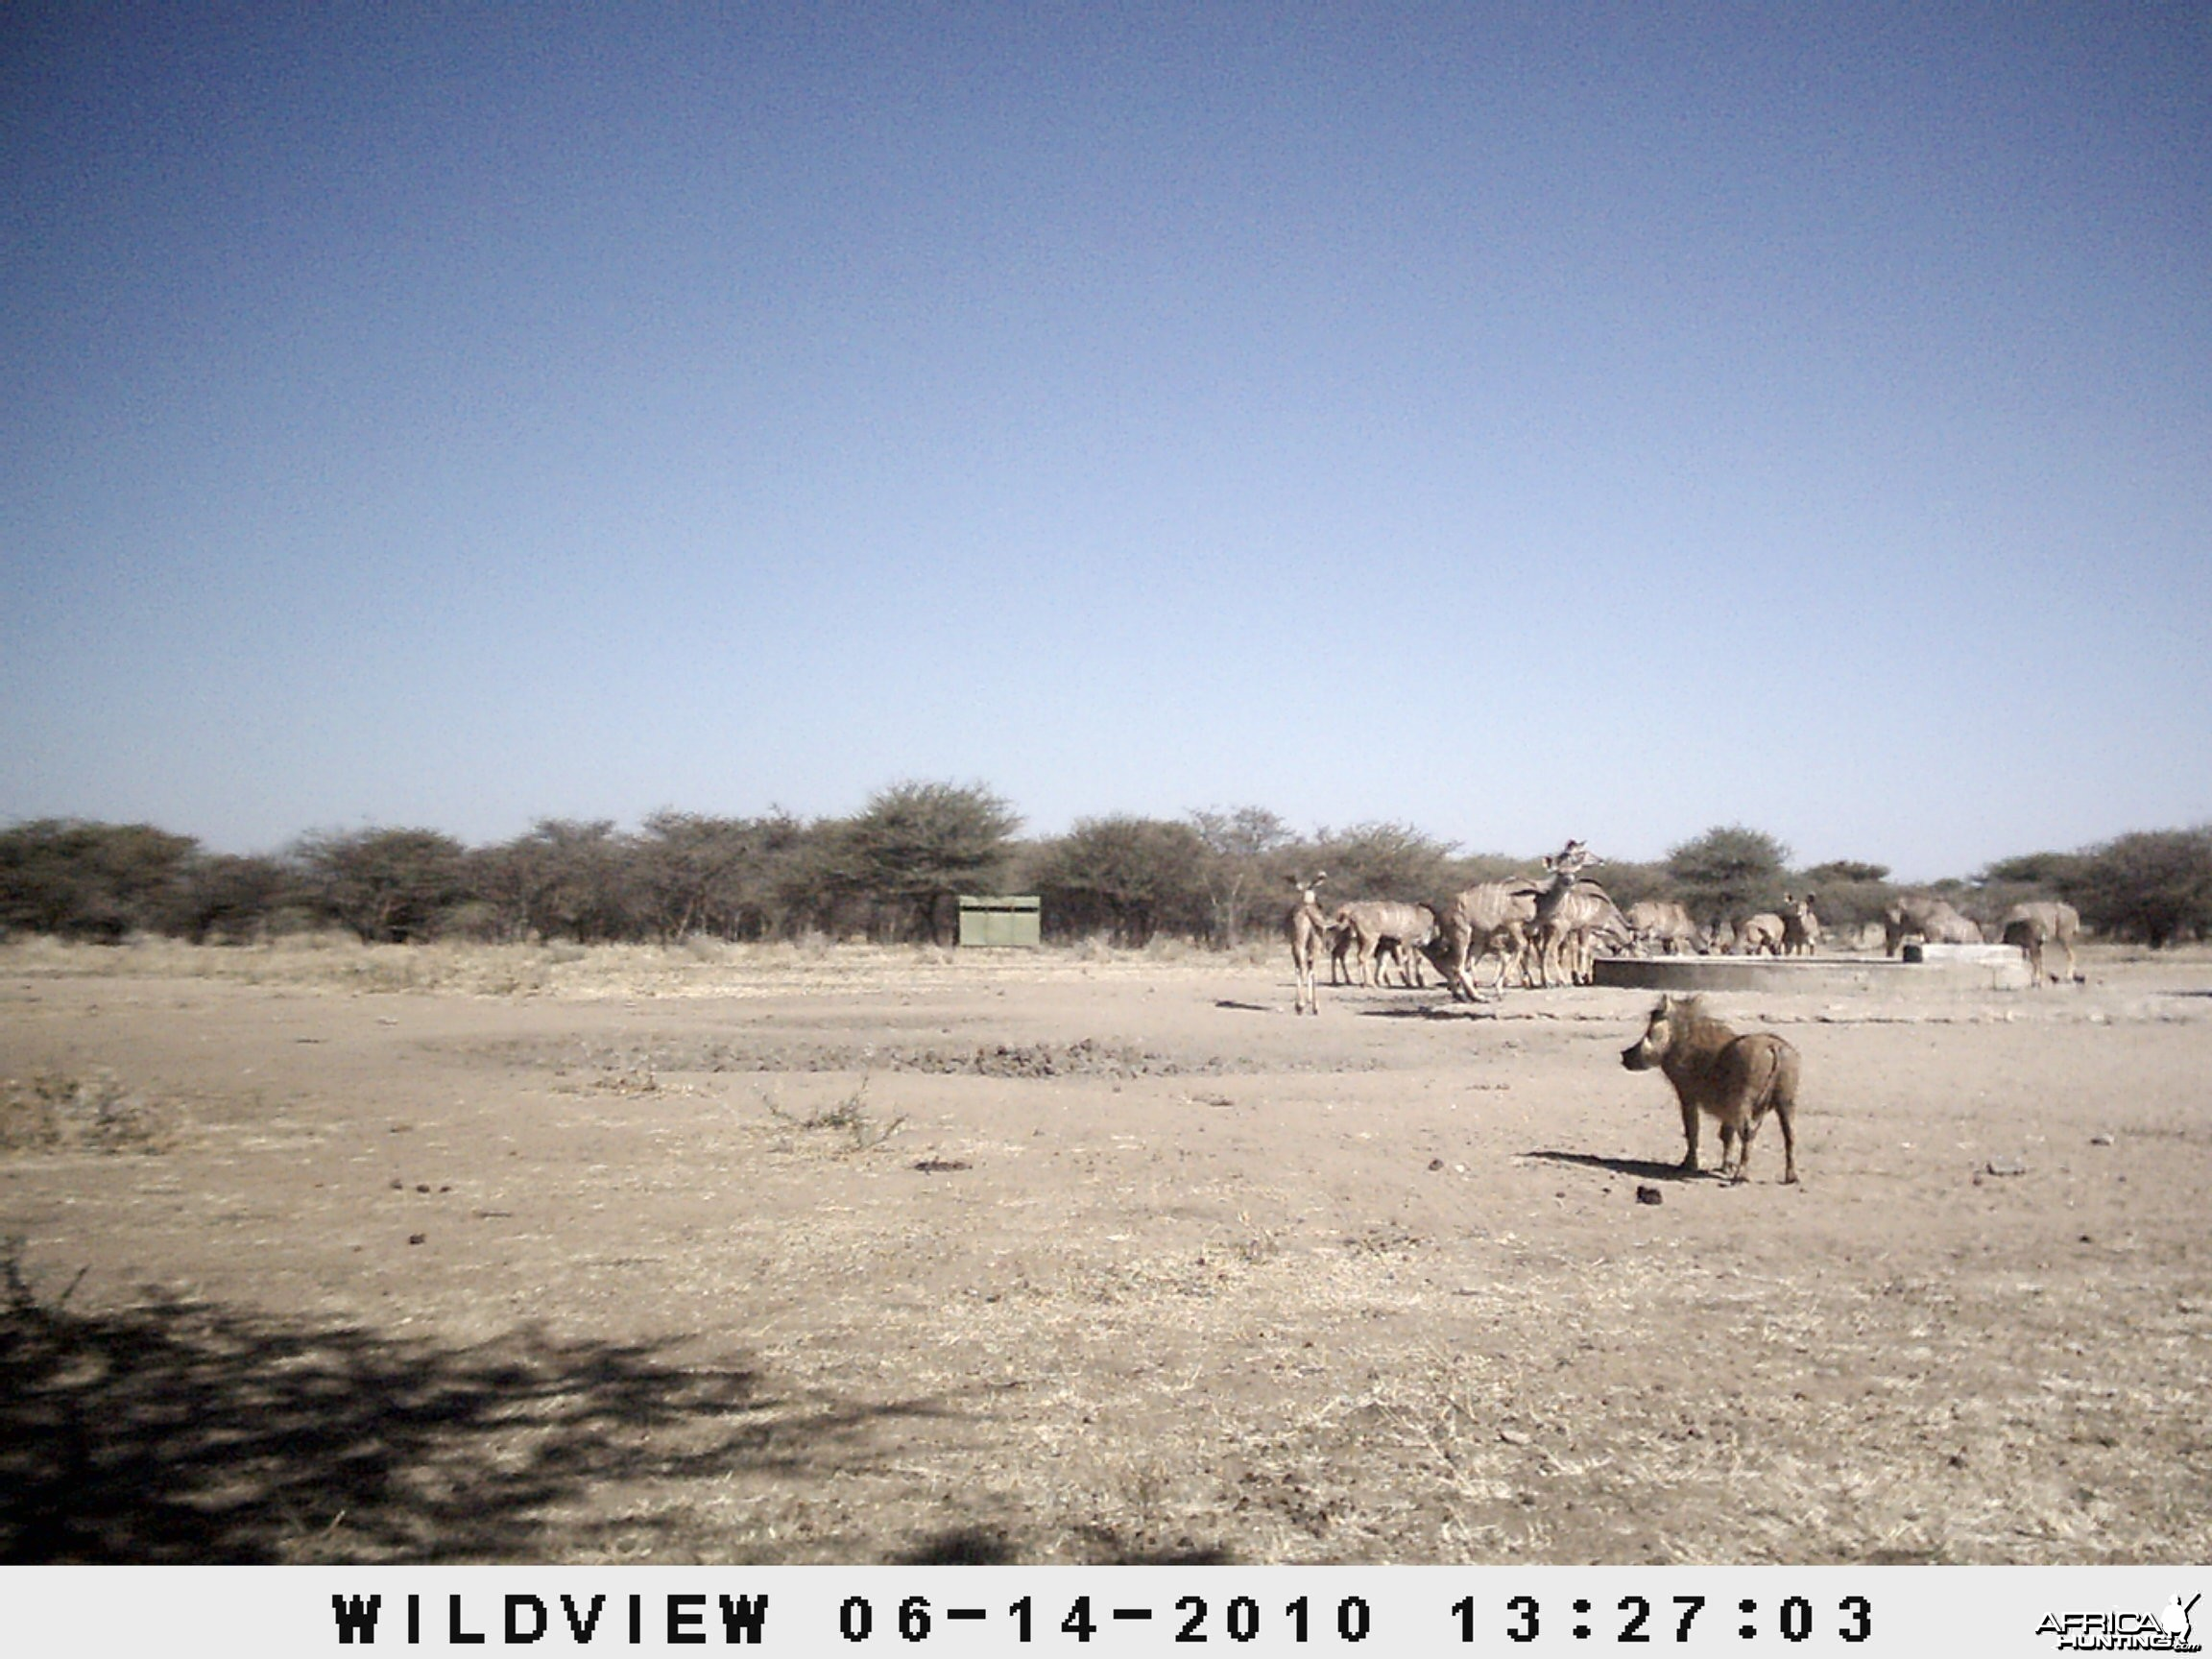 Kudus and Warthog, Namibia